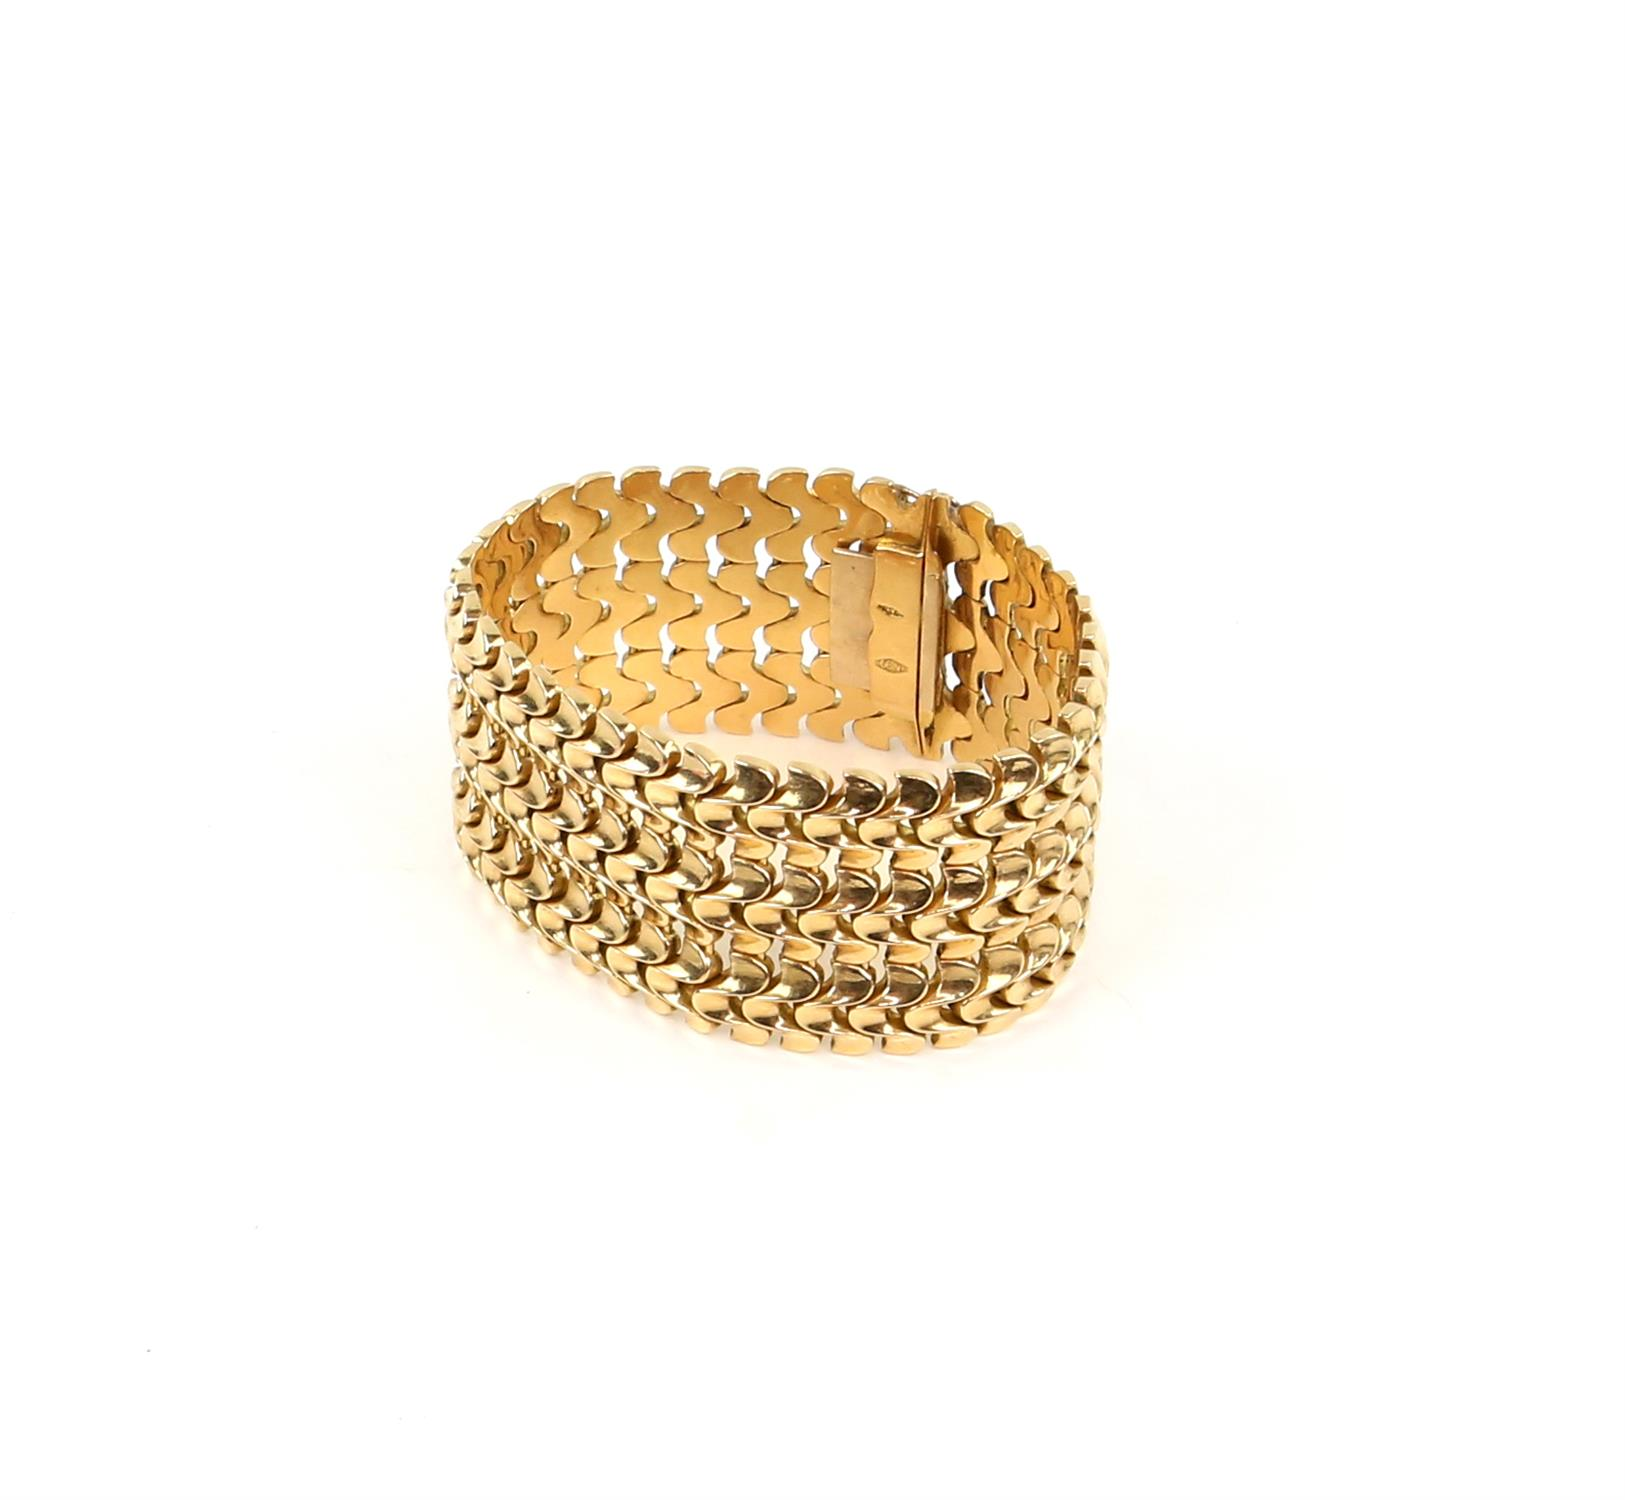 Vintage gold bracelet, three rows of fancy links, 3.5cm in width, with concealed push clasp, - Image 2 of 4